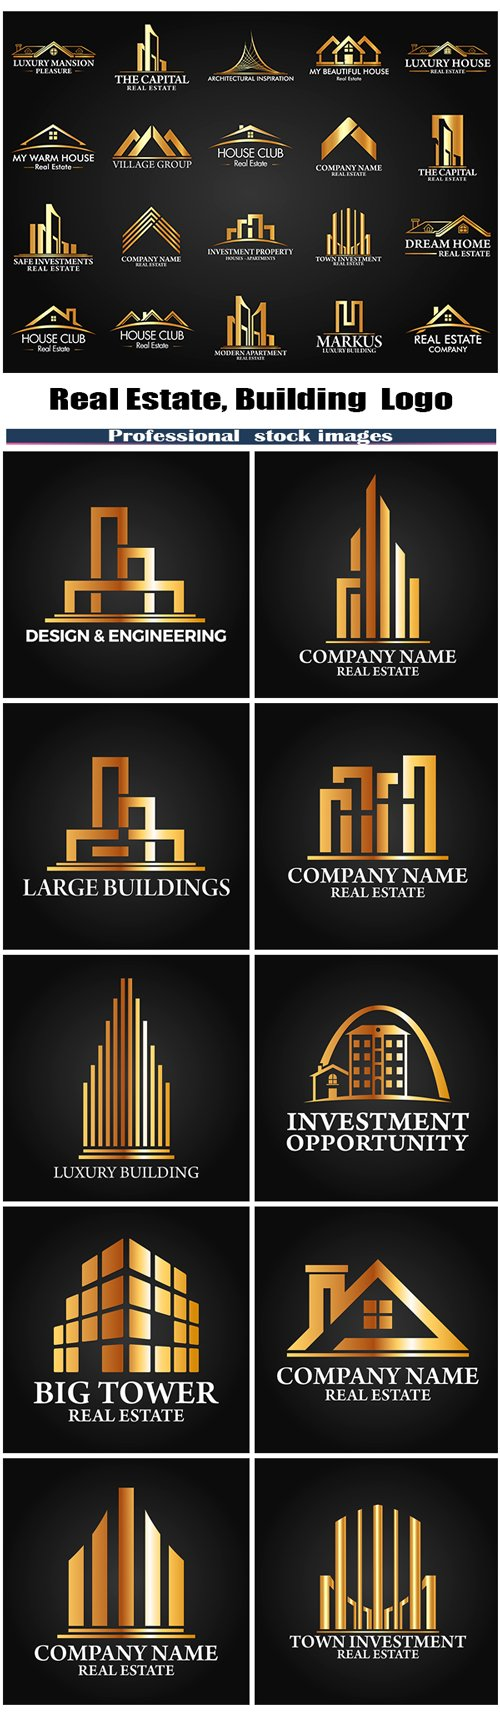 Real Estate,Building and Investment Logo #2